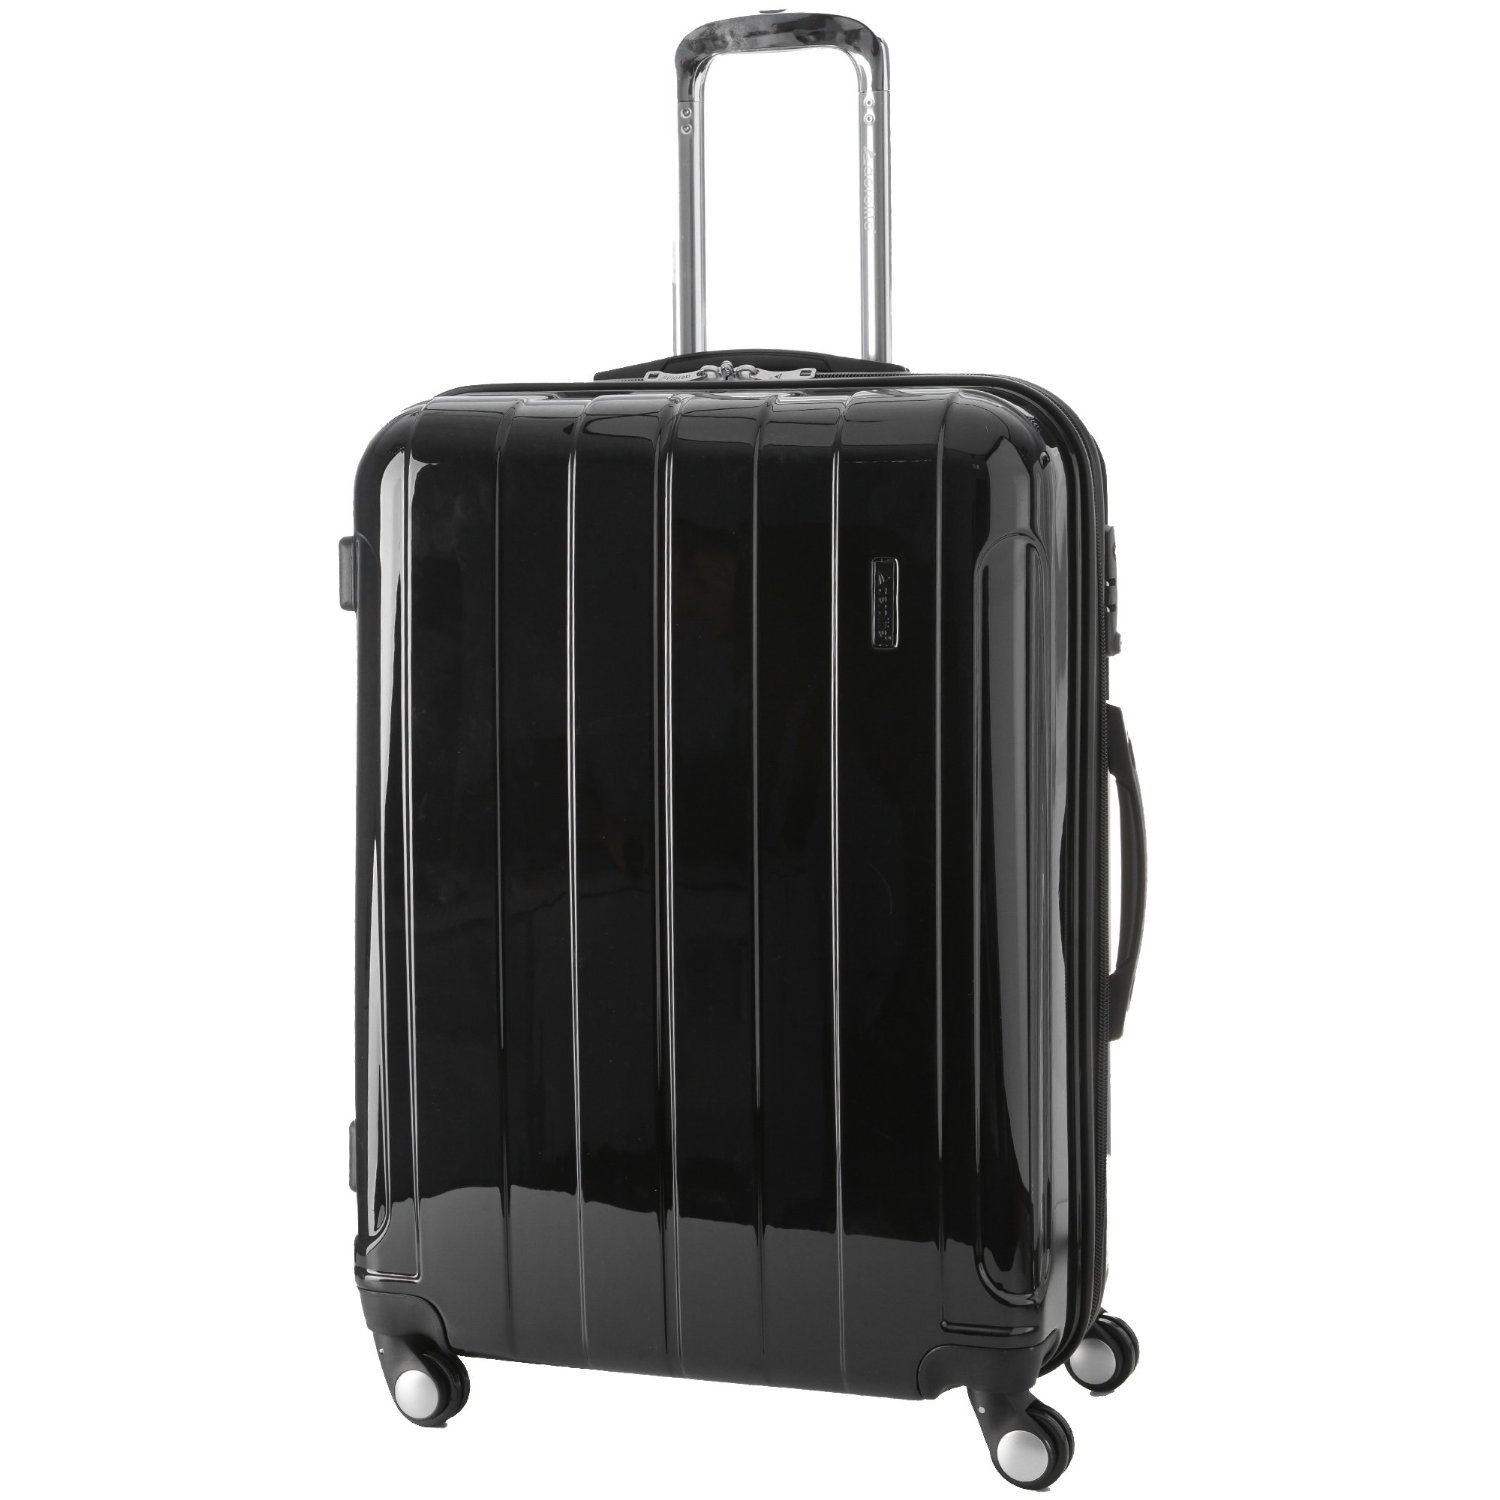 Best Hard Sided Suitcases UK Reviews In 2017 | Luggage News